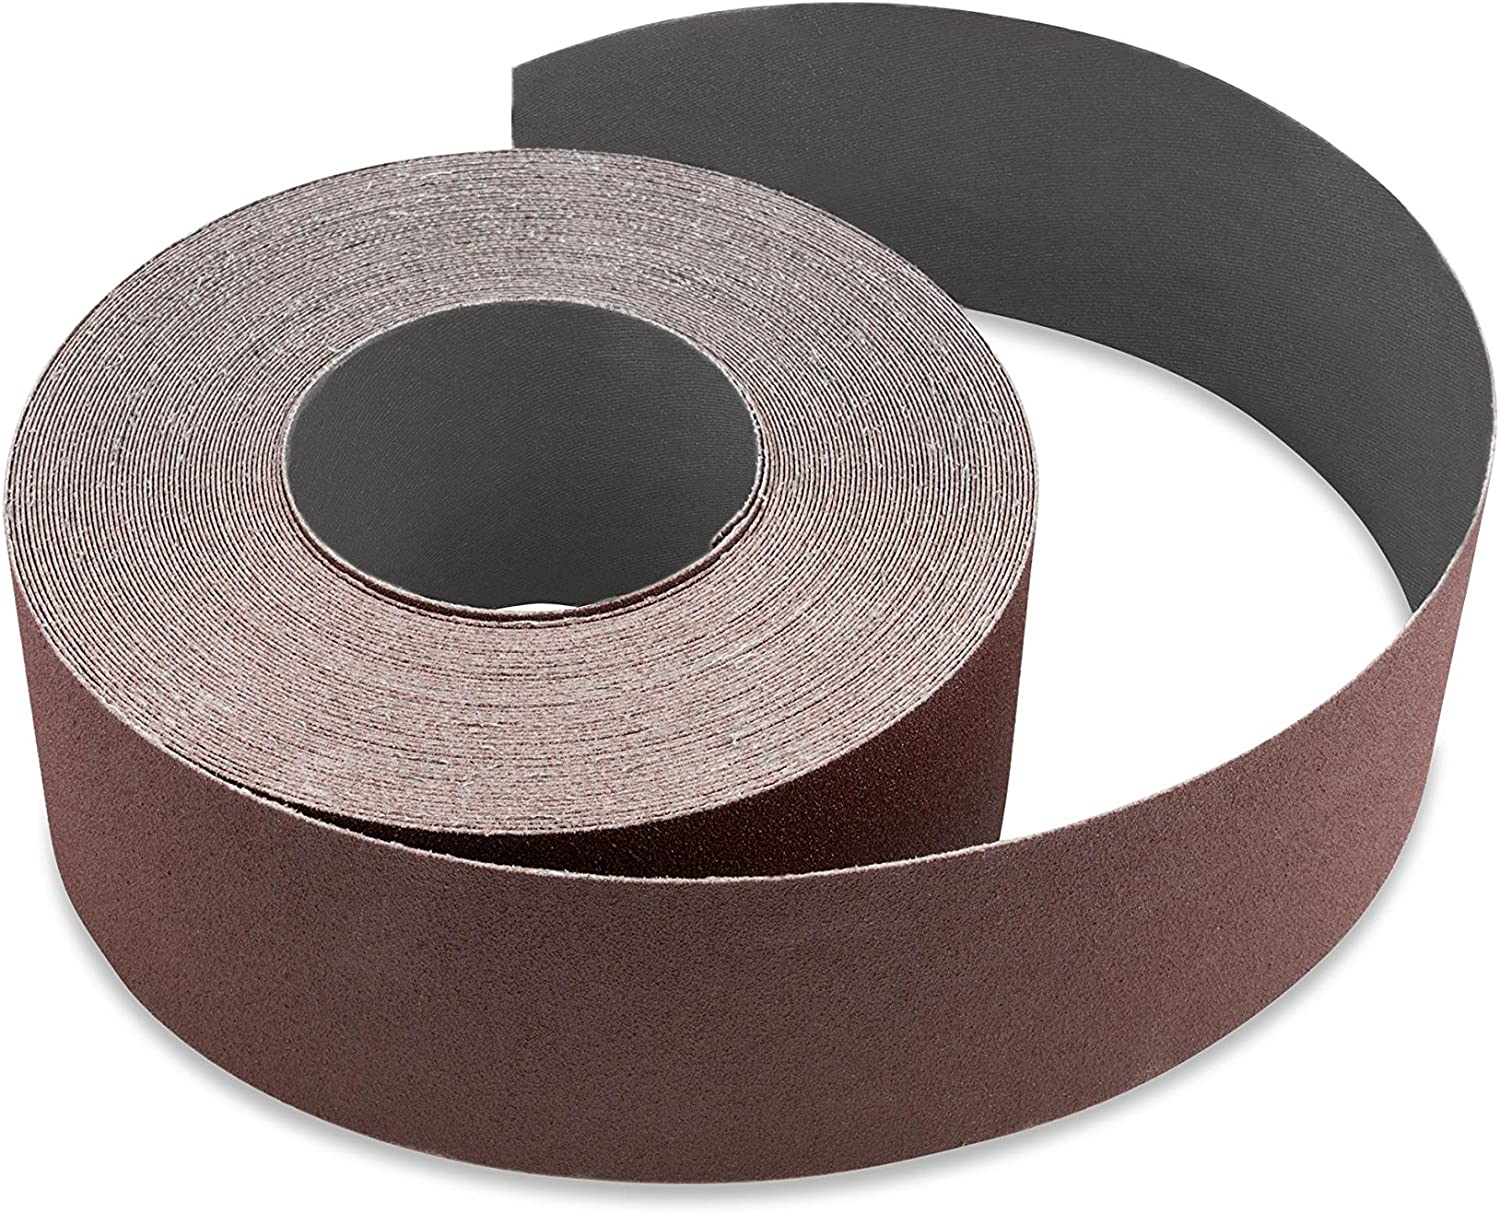 Red Label Abrasives 6 Inch X 50 FT 80 Grit Woodworking Drum Sander Strip Roll Cut to Length